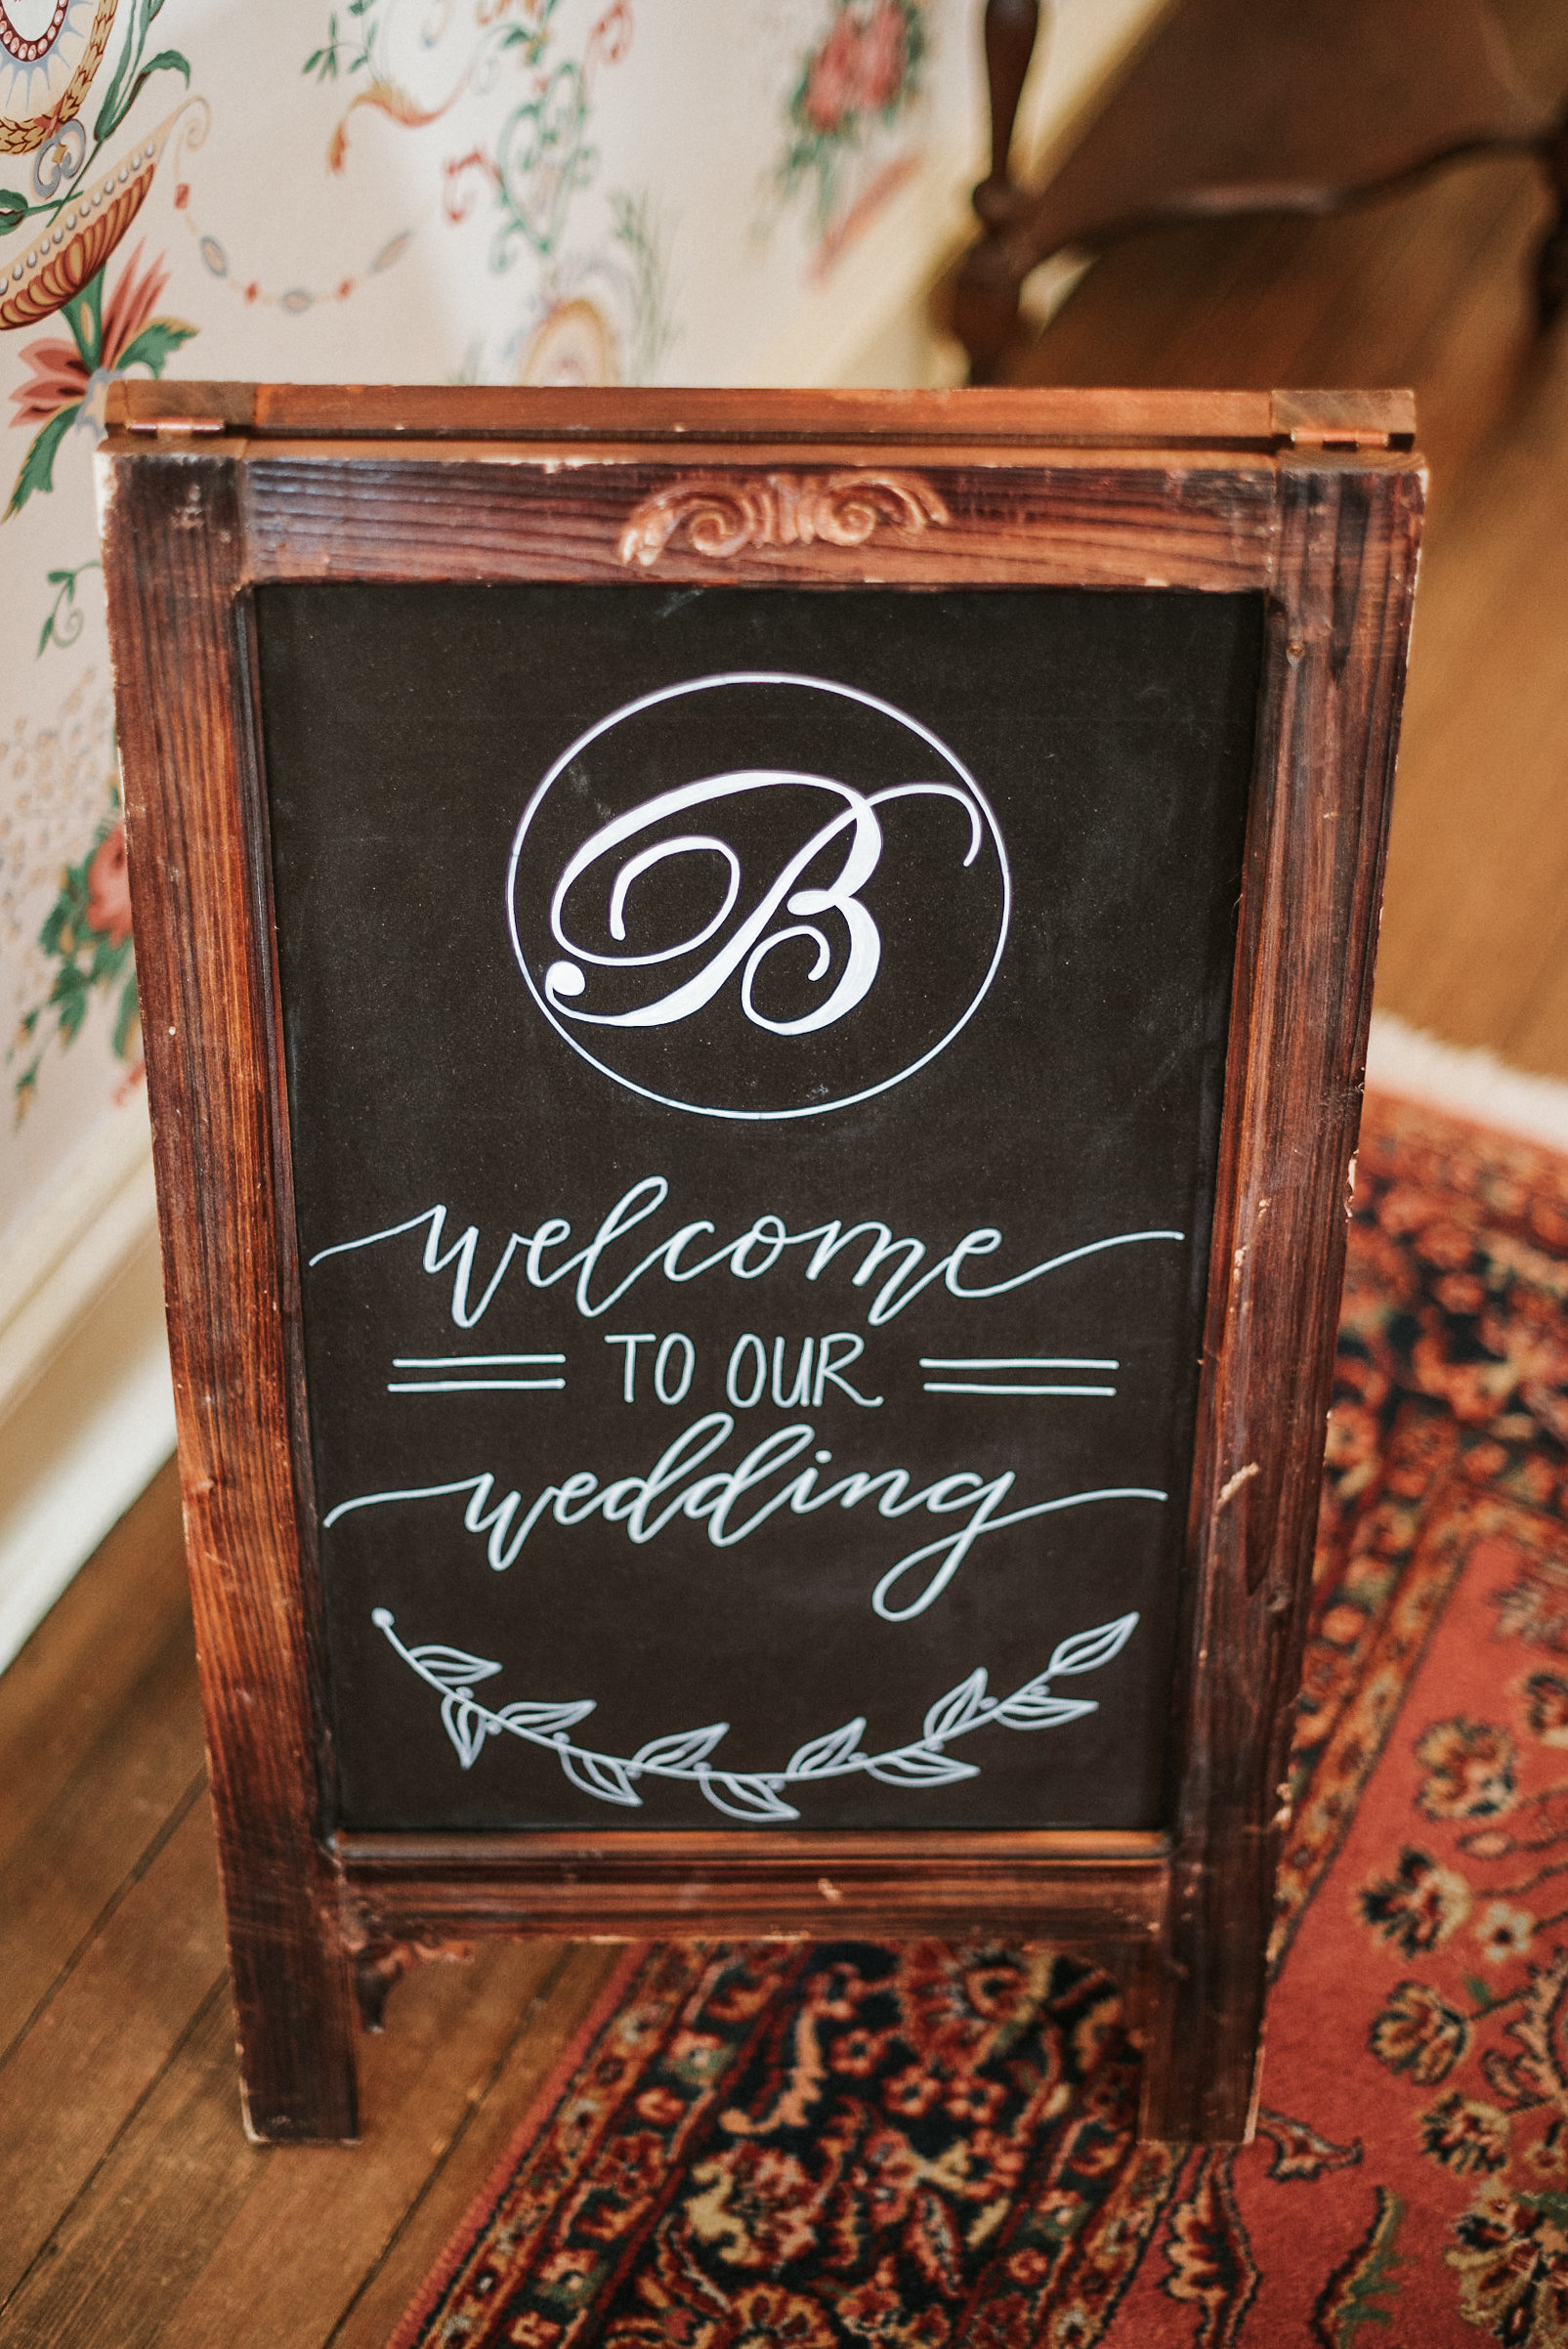 Interior wedding signage